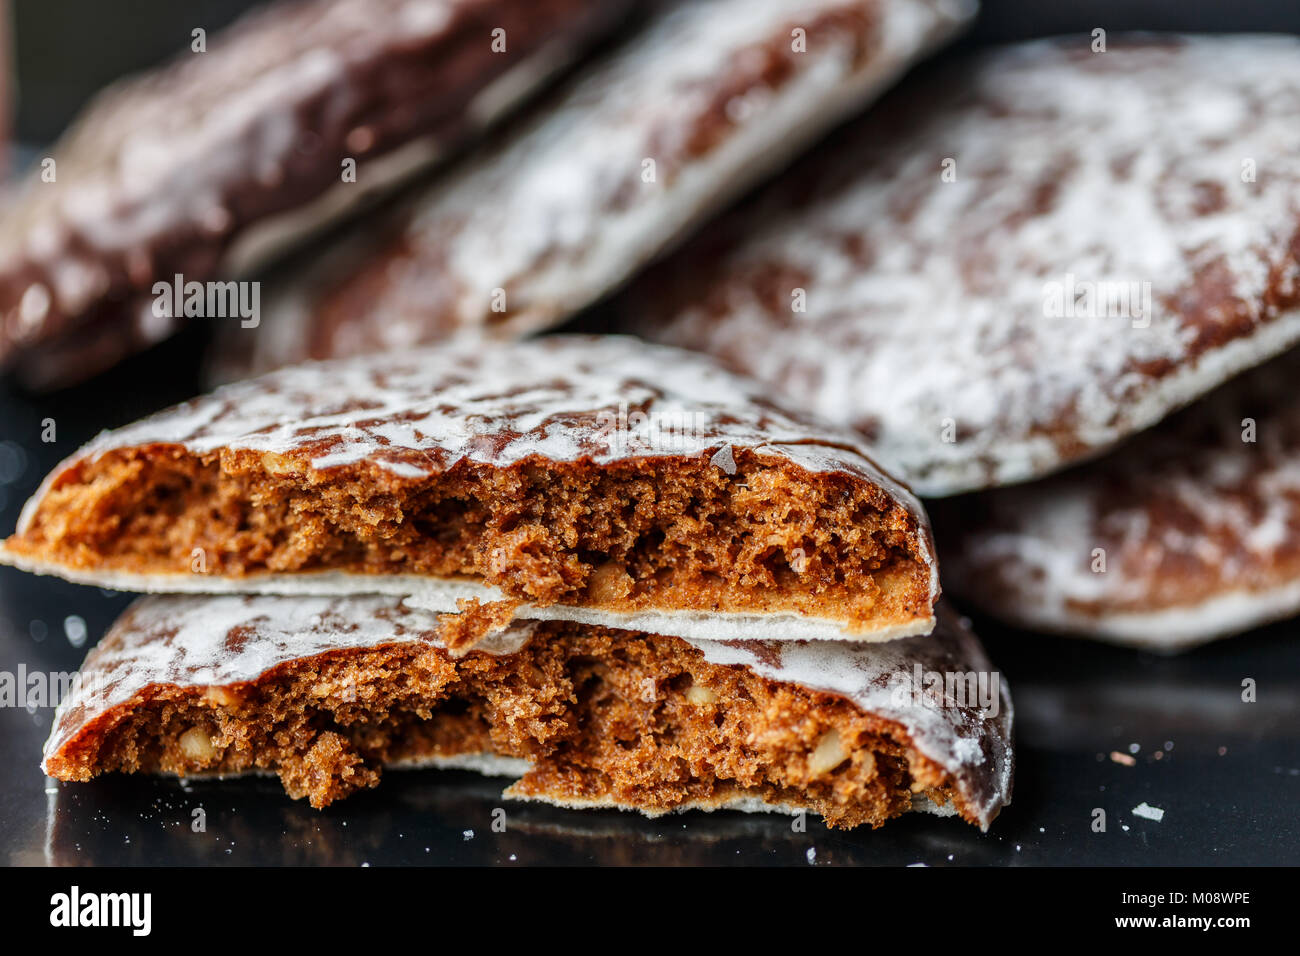 Round Lebkuchen German Gingerbread Cookies Stock Photo 172299526